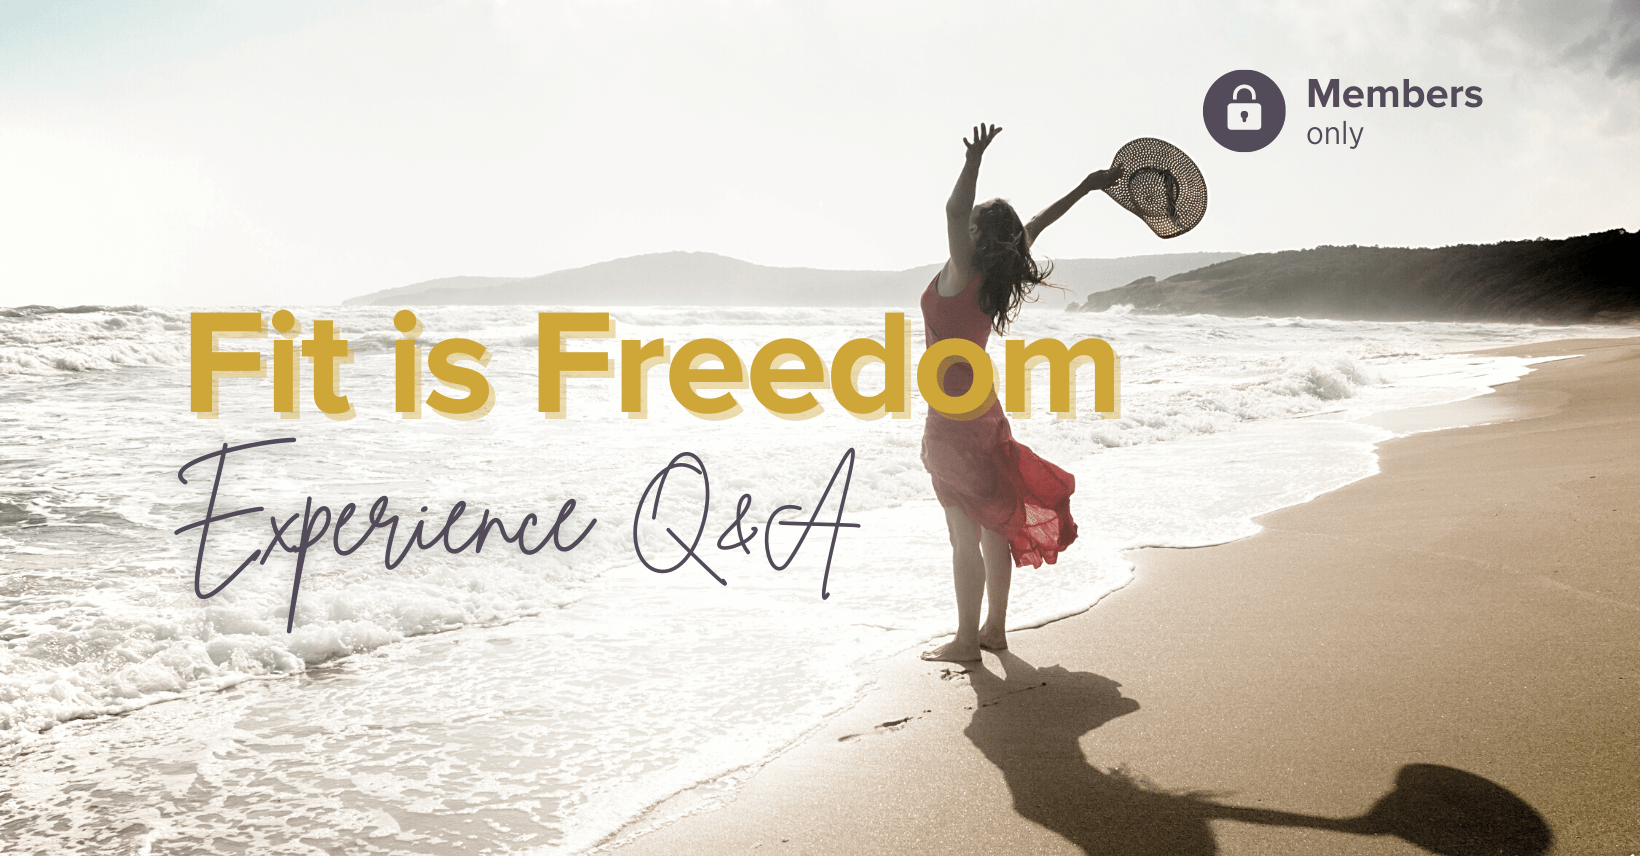 Fit is Freedom Experience Q&A header. ocean background, woman with hat reaching to sky on sand, members only